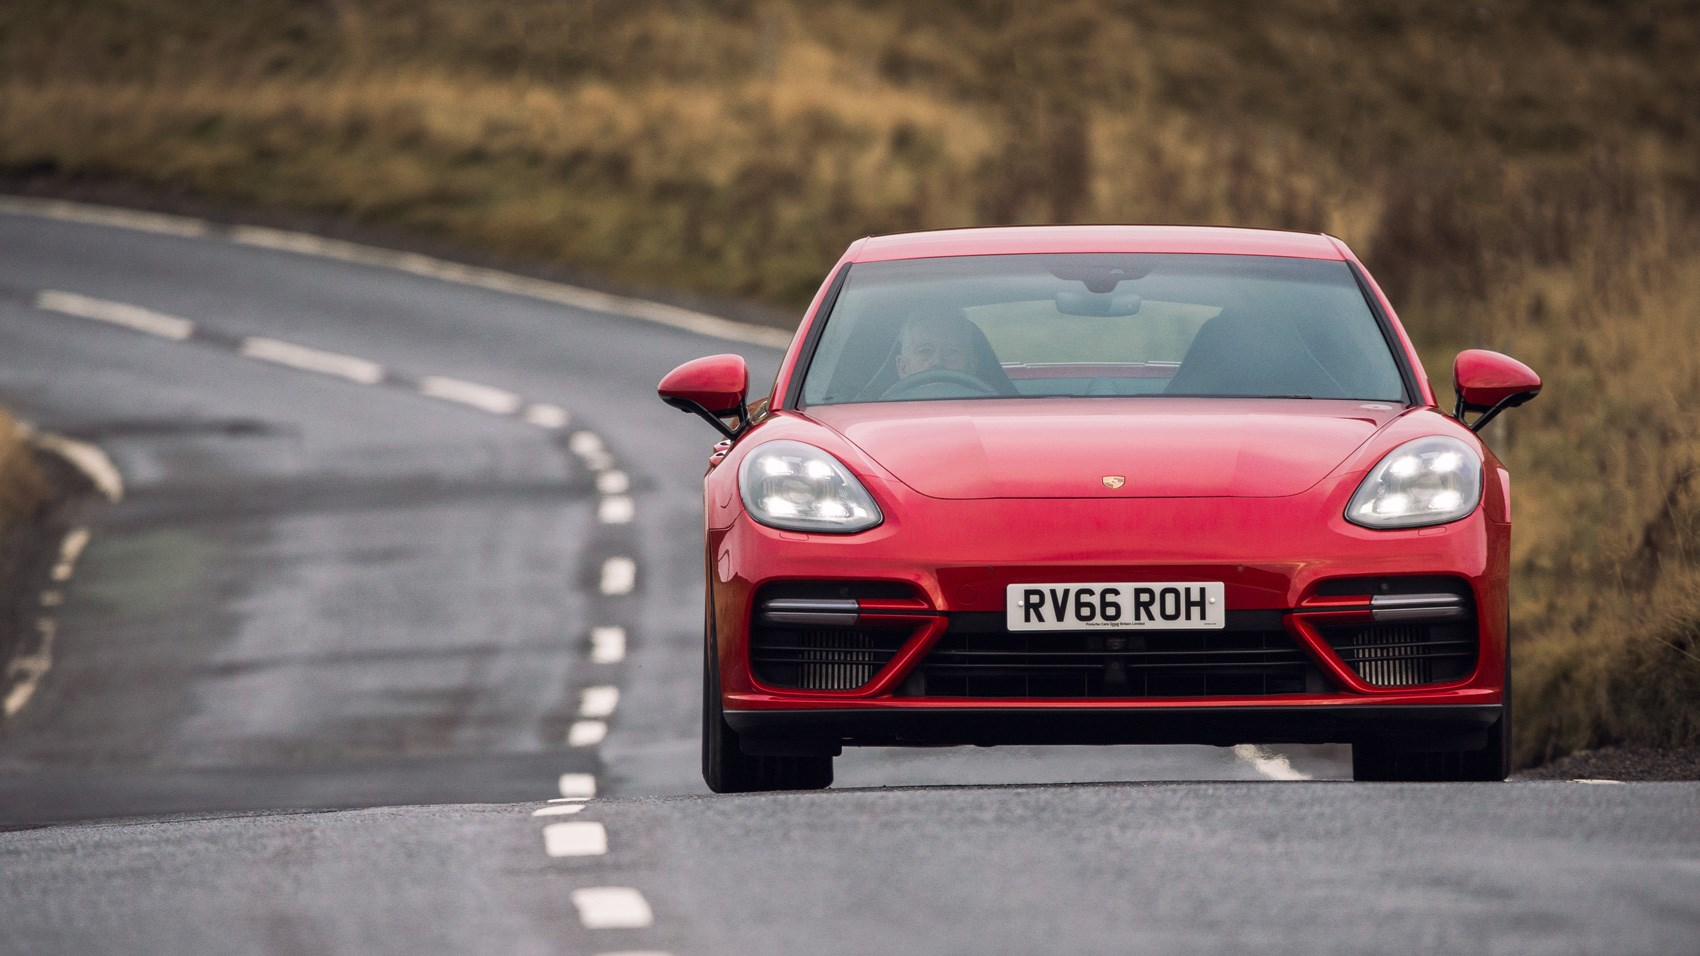 download original size red porsche panamera